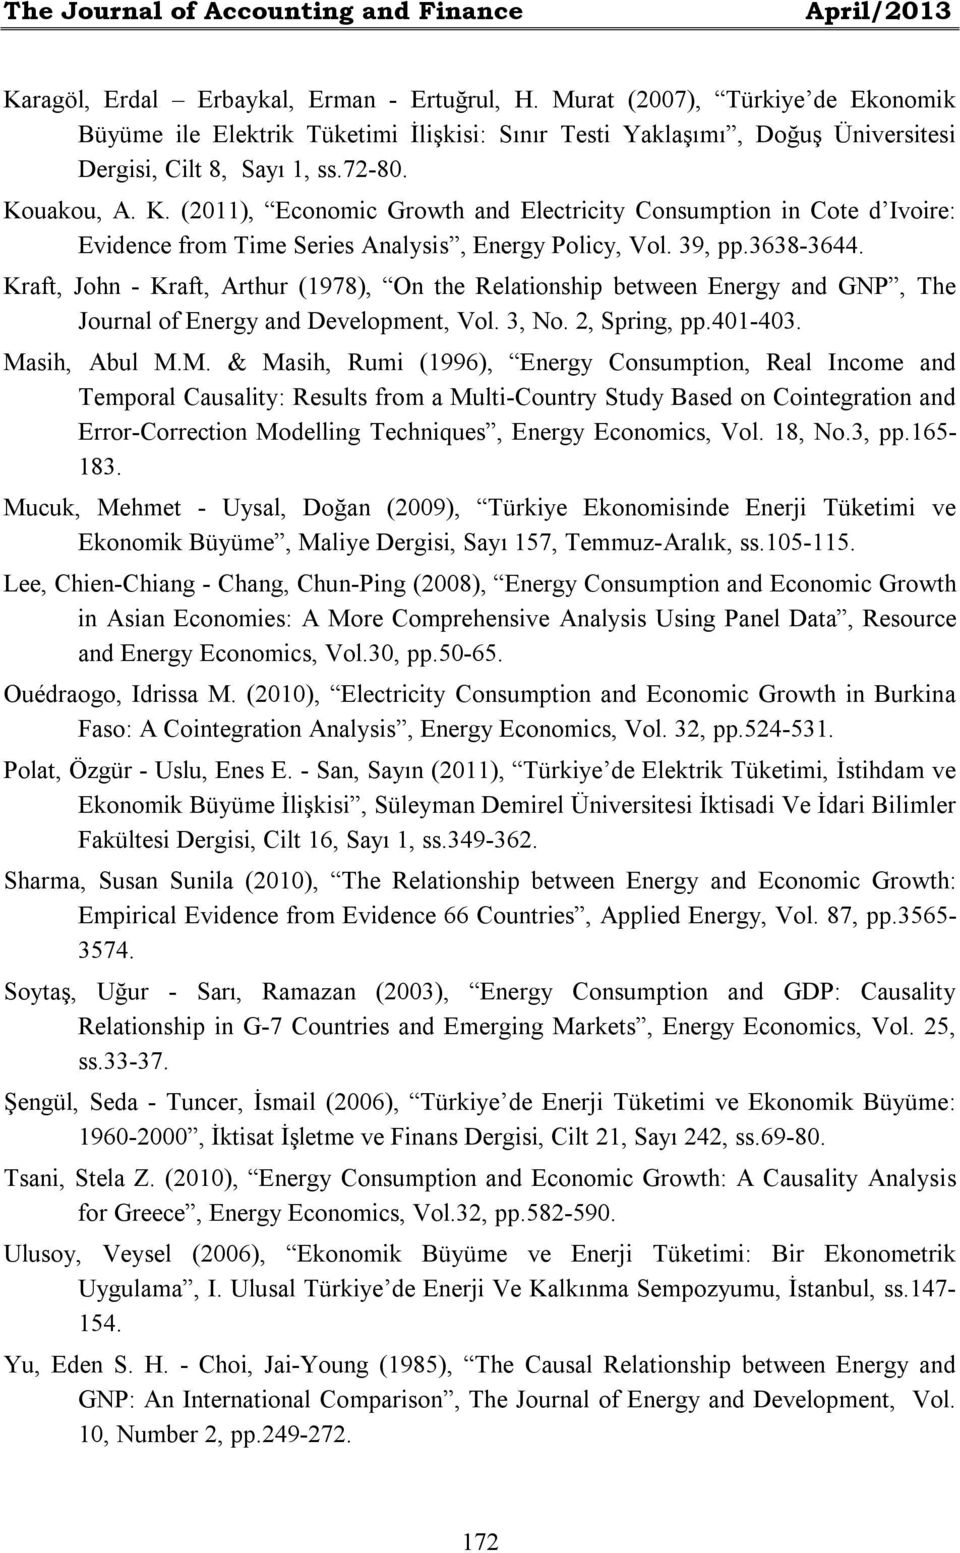 uakou, A. K. (2011), Economic Growth and Electricity Consumption in Cote d Ivoire: Evidence from Time Series Analysis, Energy Policy, Vol. 39, pp.3638-3644.